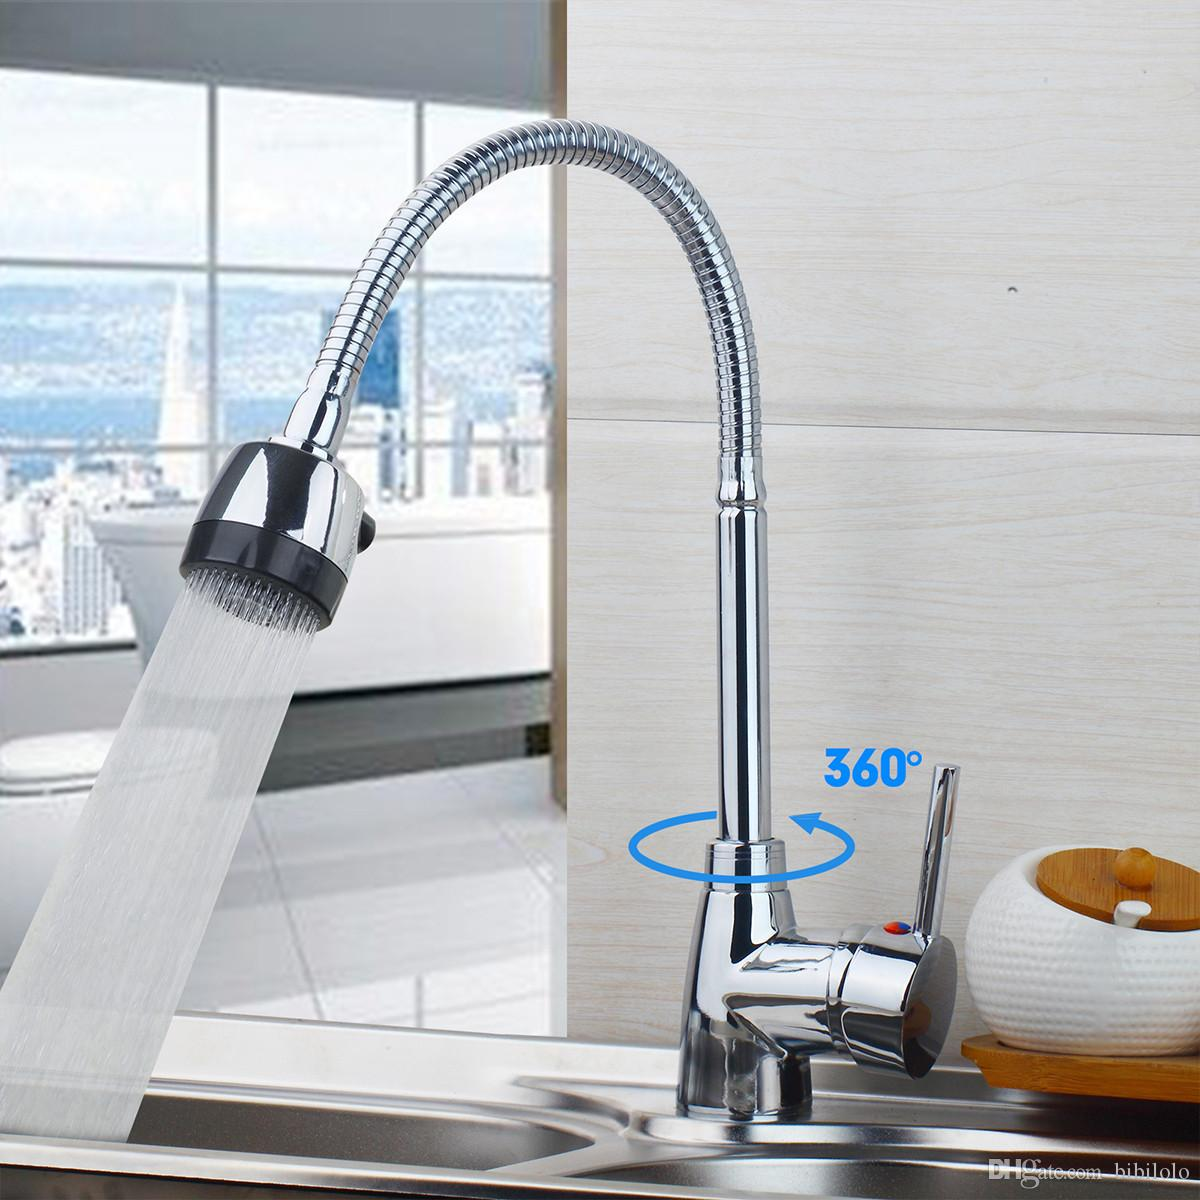 2018 Novel Design Kitchen Faucet 360 Degree Swivel Chrome Ceramic Plate  Spool Hot Cold Wate Mixer Outstanding Kitchen Faucet From Bibilolo, $22.54  | Dhgate.